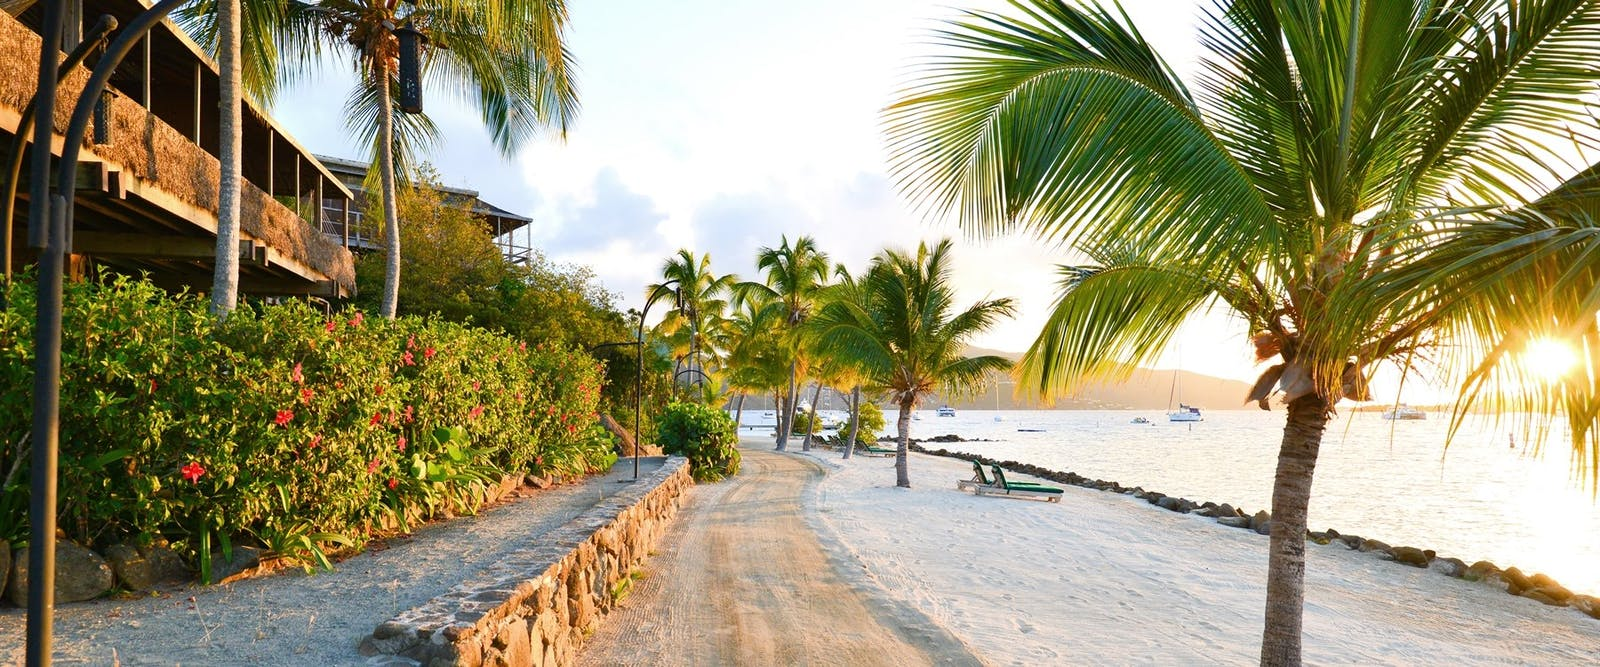 Take a stroll down the sandy path along the shore at Bitter End Yacht Club, British Virgin Islands